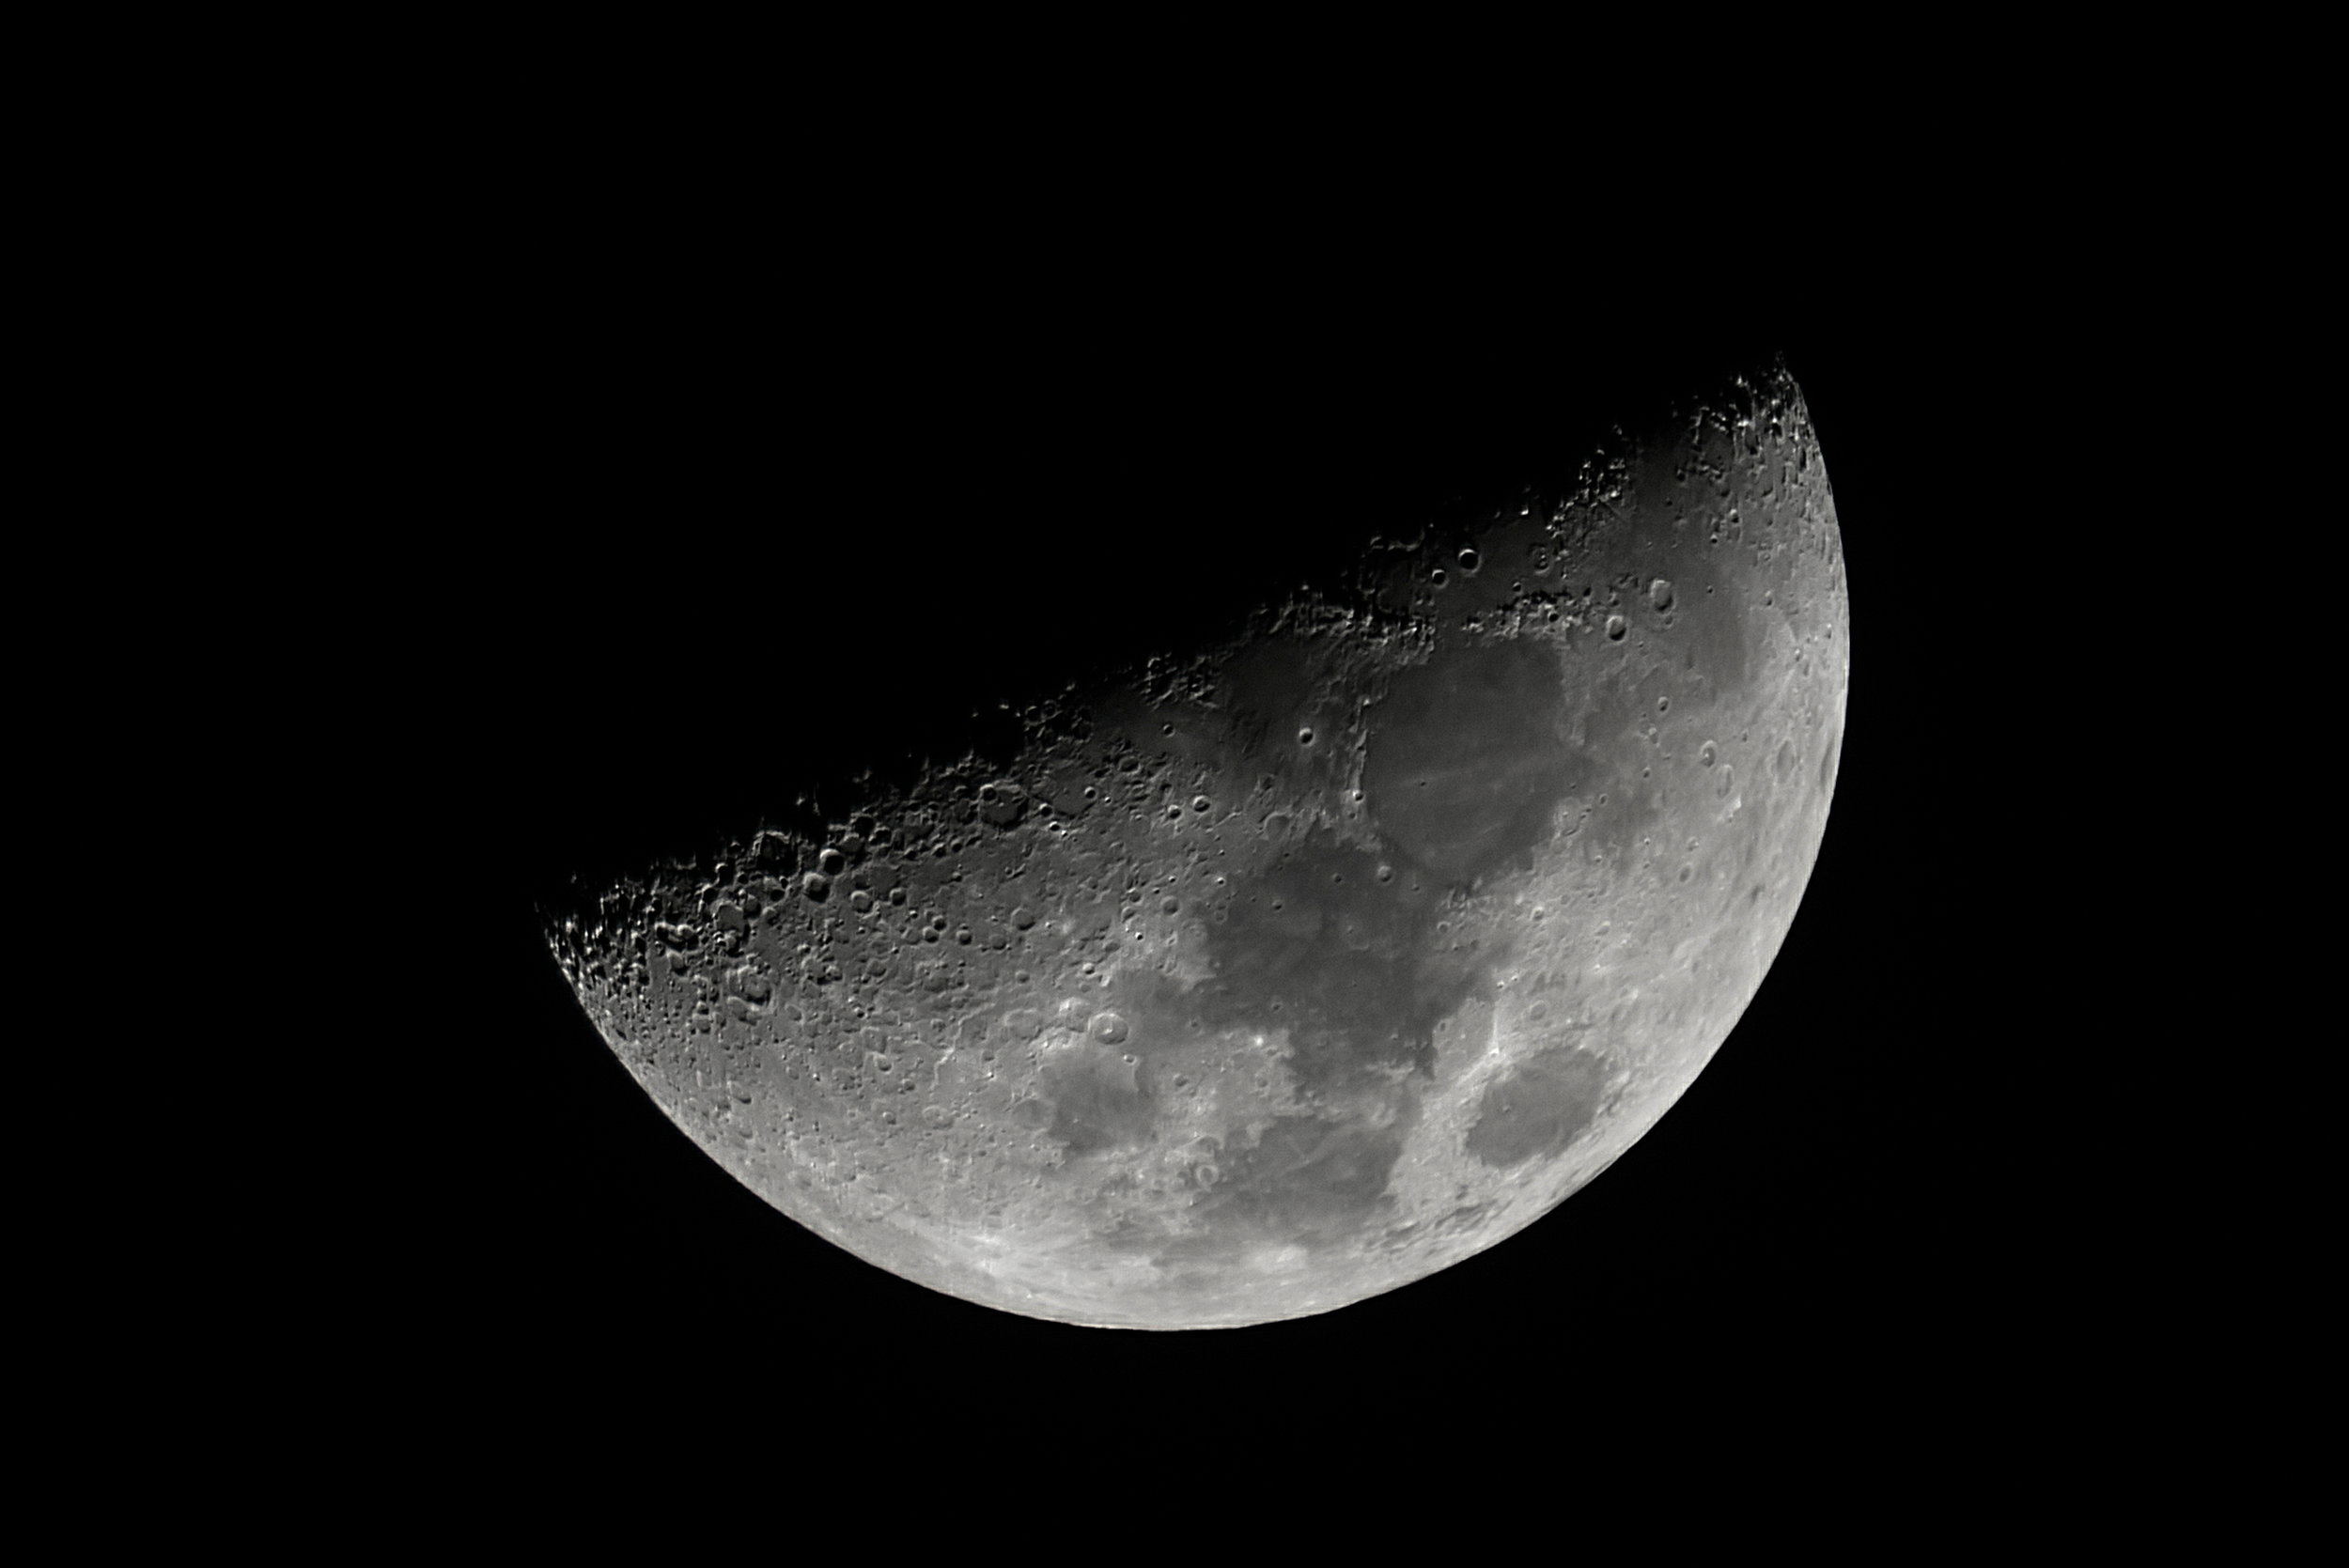 Moon Waxing Crescent 6.67 days 42% Illumination